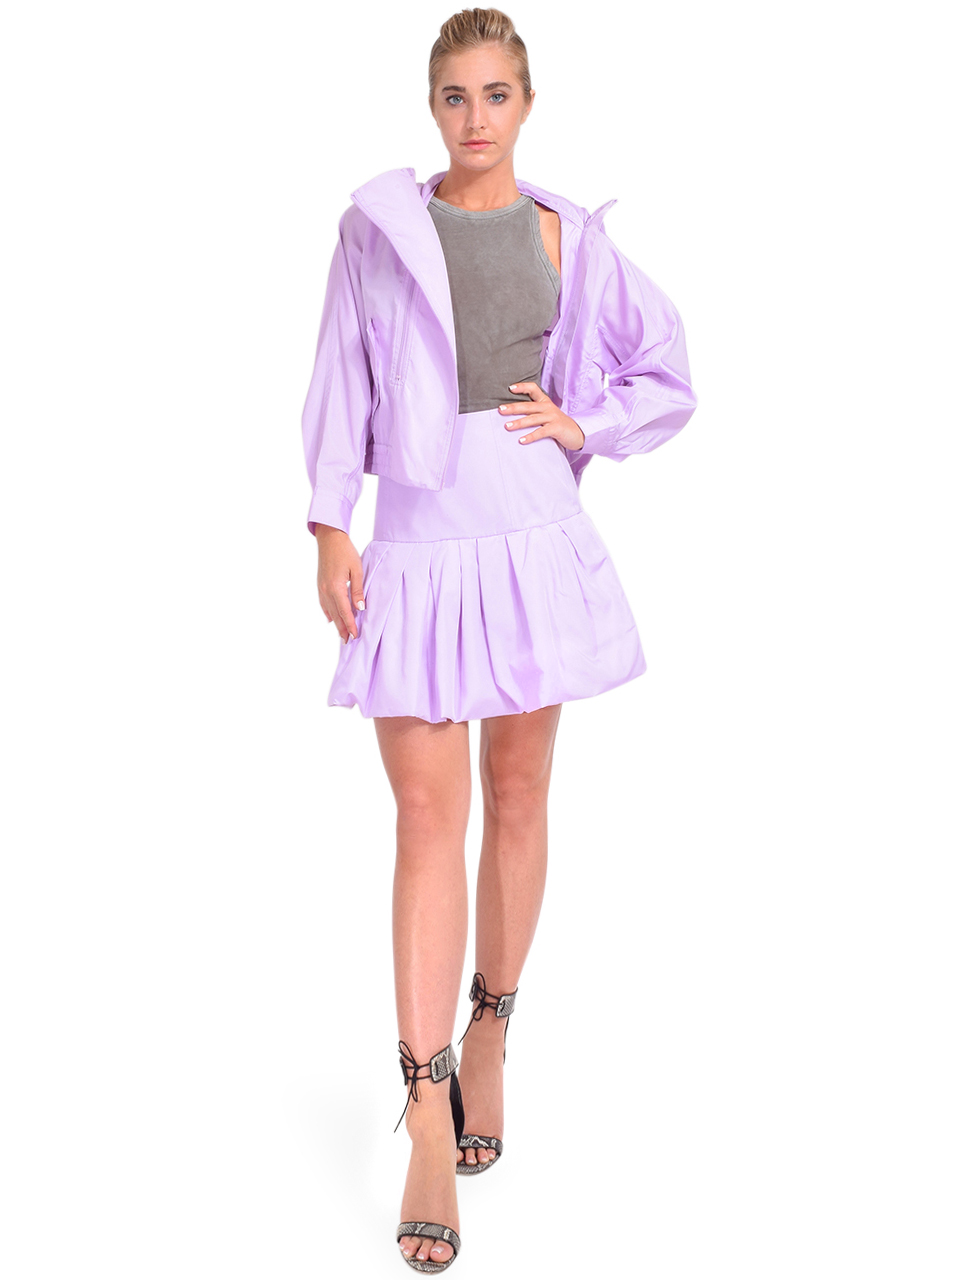 3.1 Phillip Lim Taffeta Hooded Boxing Jacket in Lavender Full Outfit 2